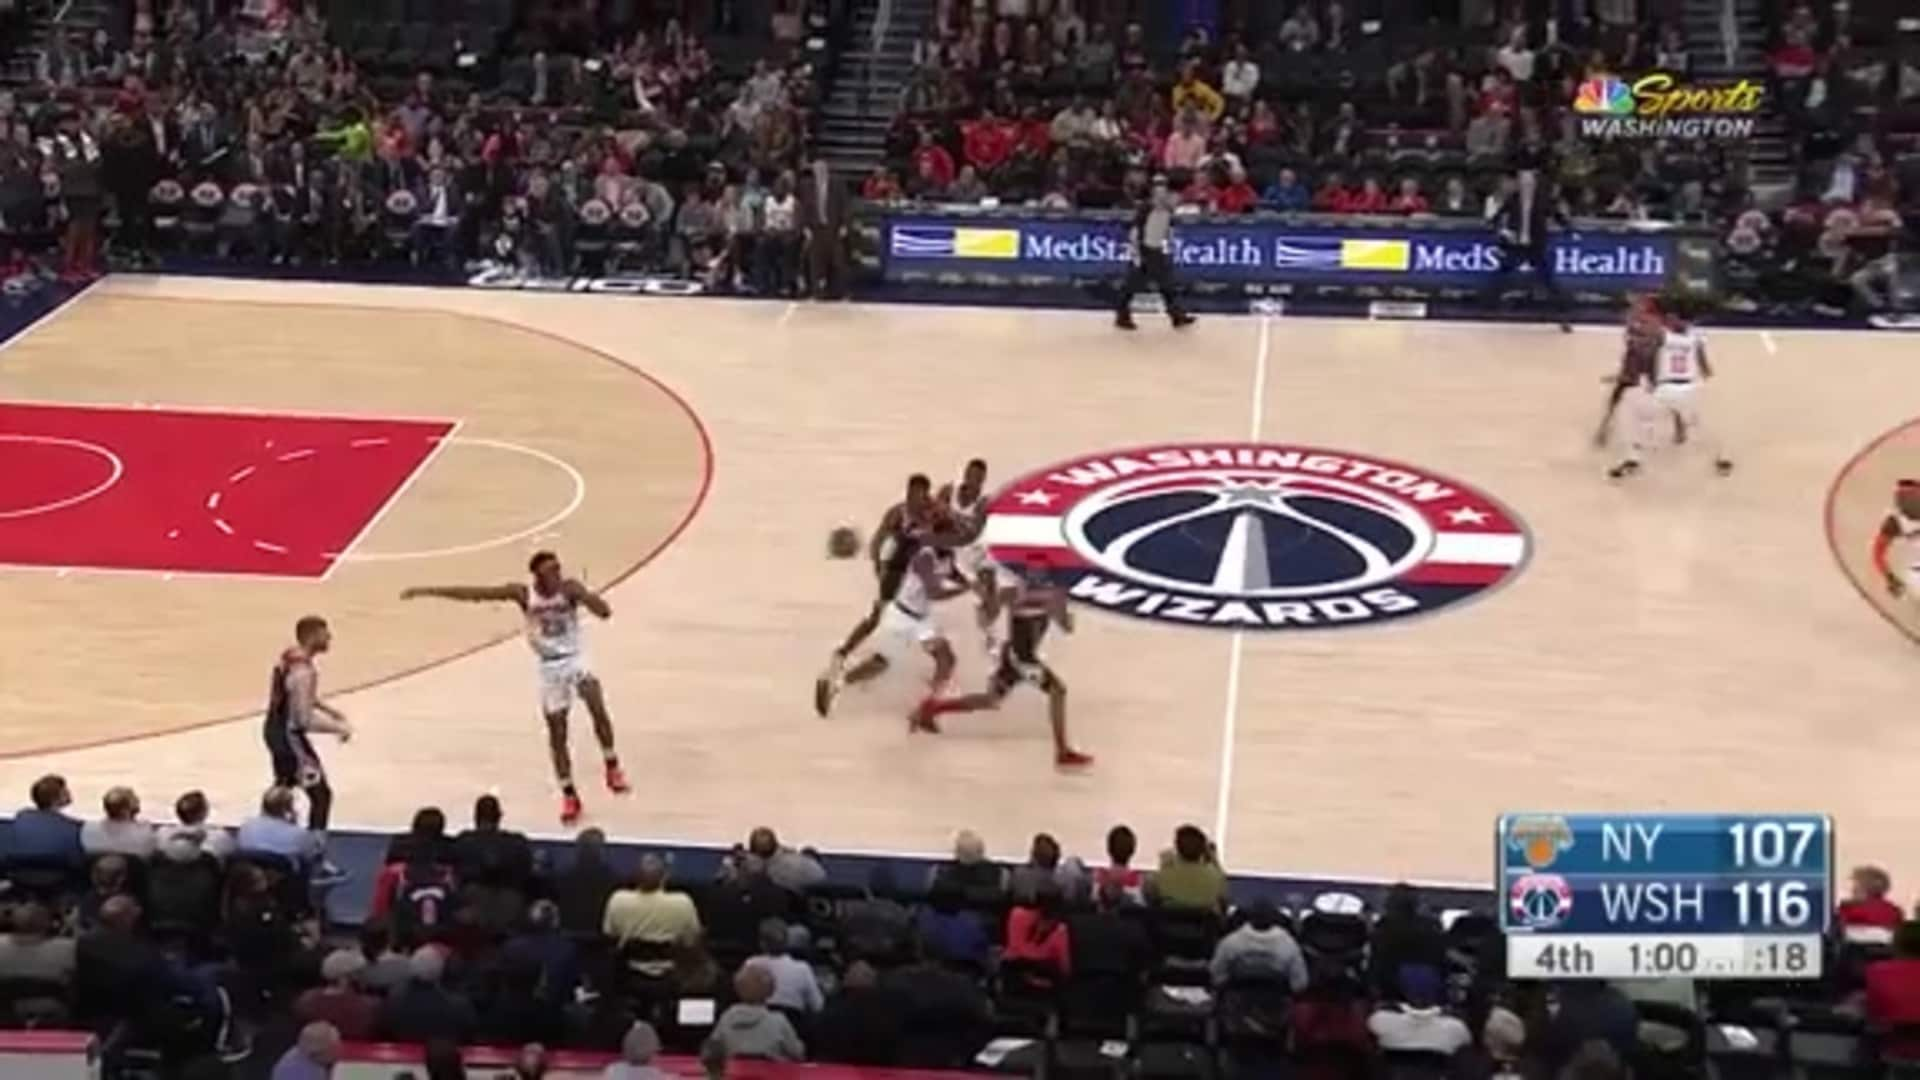 Highlights: Bradley Beal vs. Knicks - 03/10/20